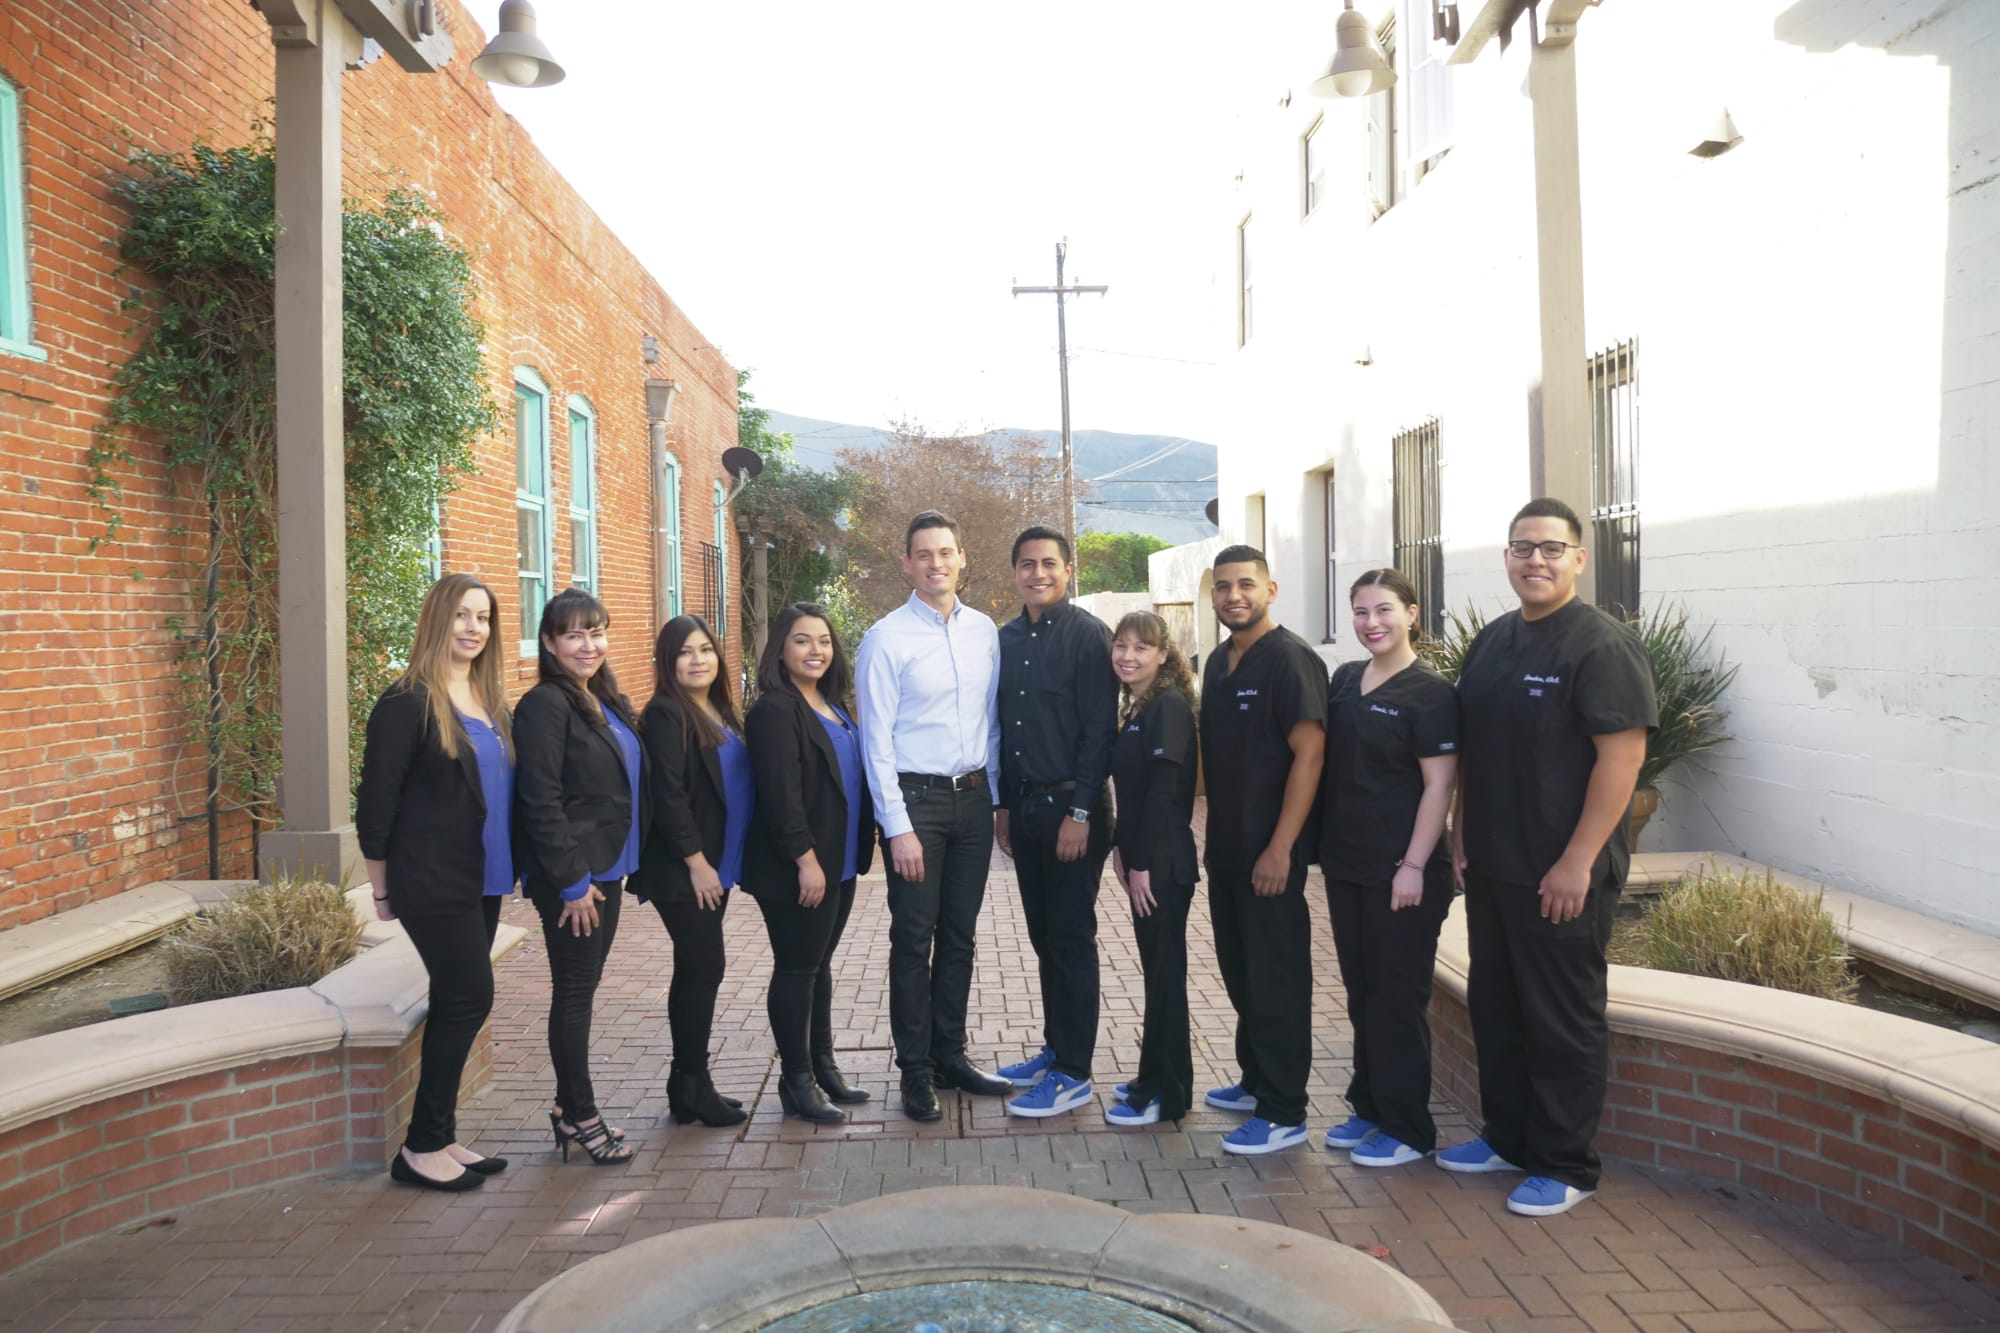 Dr.Jared Lee and the team